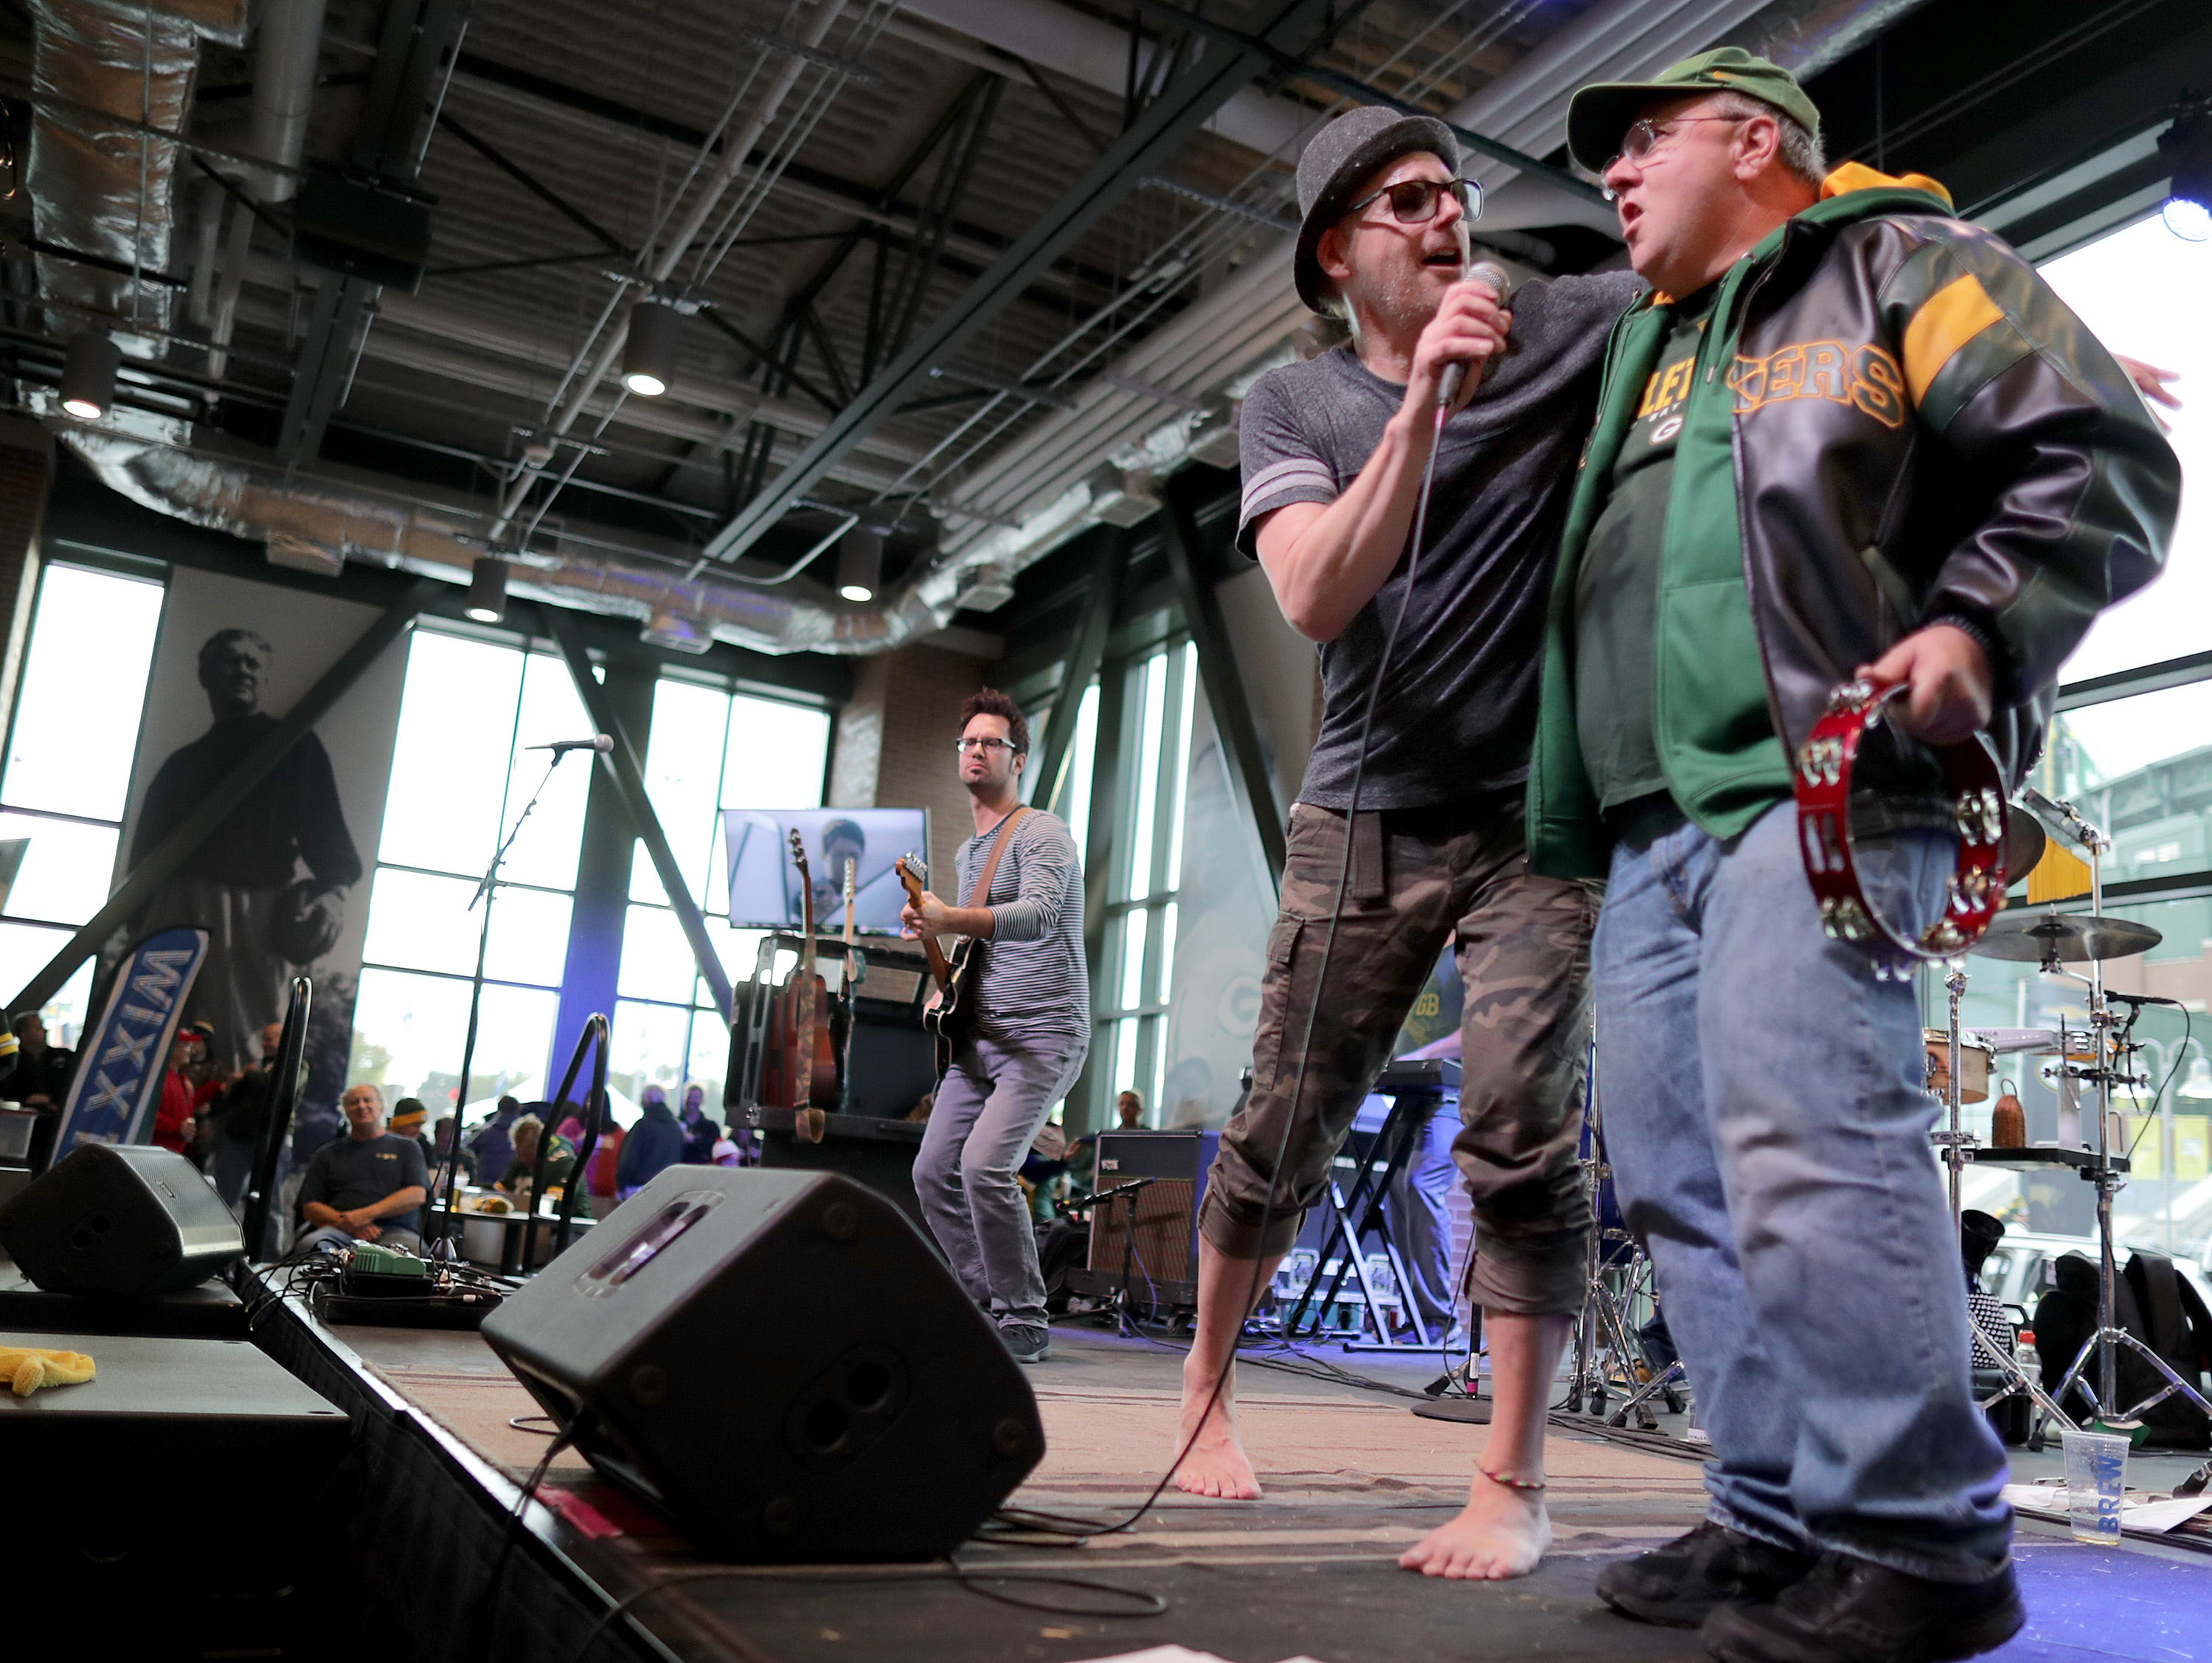 Love Monkeys lead singer John Hauser brings Packers fan Arland Wingate onstage while playing before the Green Bay Packers tkae on the San Francisco 49ers on Monday, October 15, 2018, at Lambeau Field in Green Bay, Wis. 